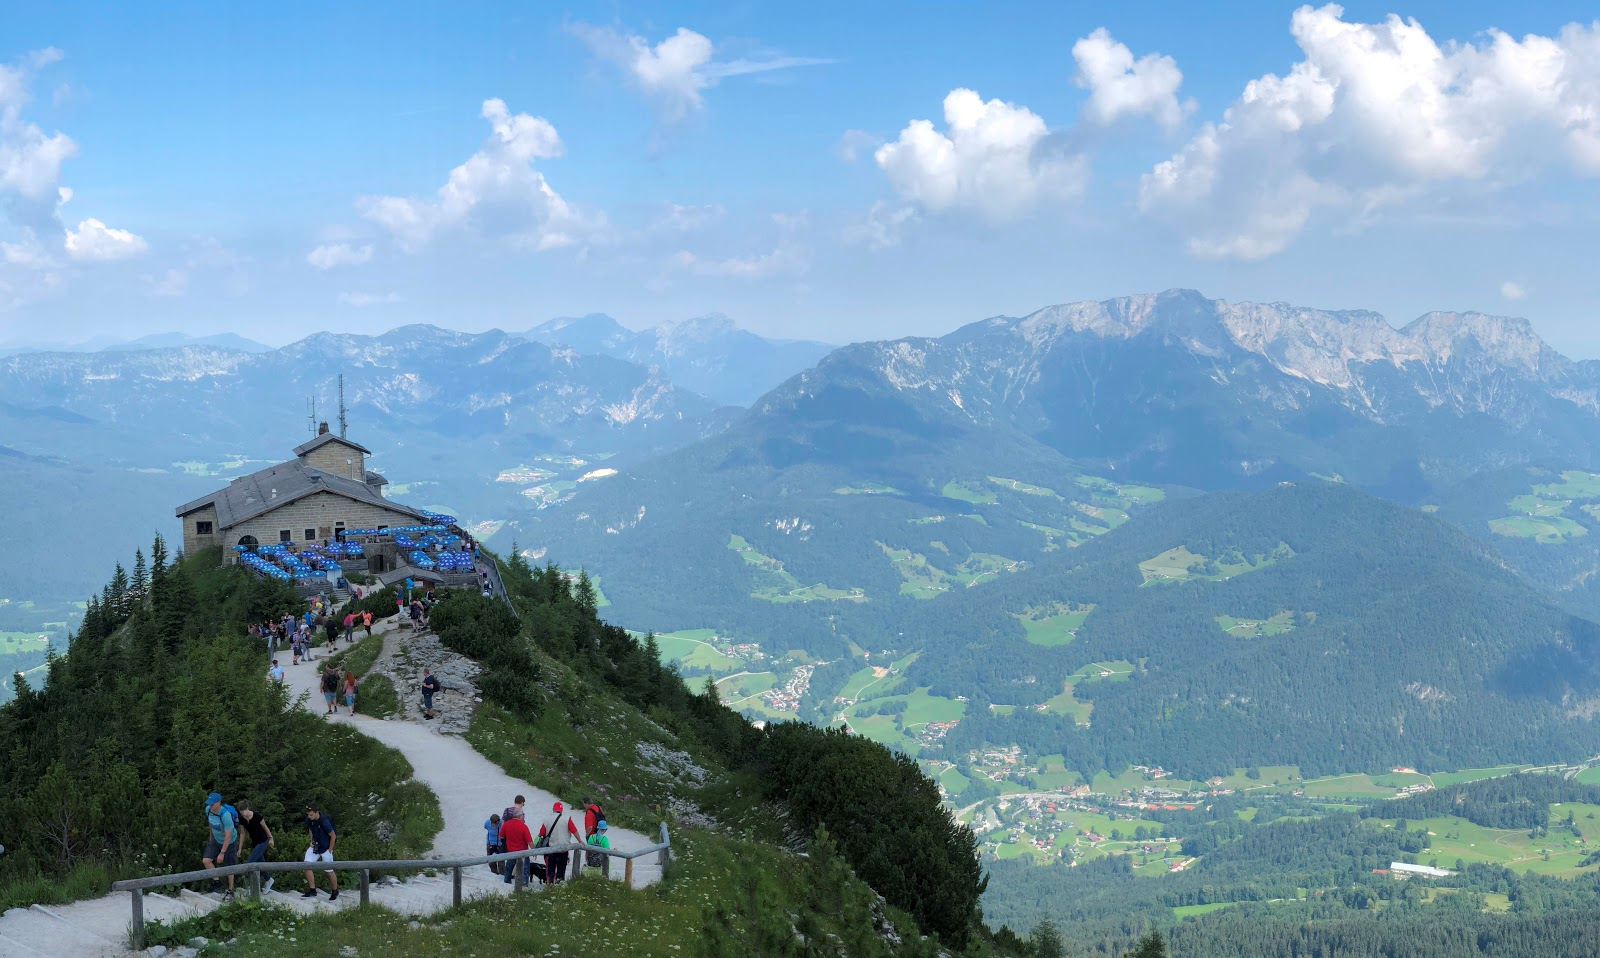 Bicycling to top of Kehlsteinhaus - Eagles Nest - view from top